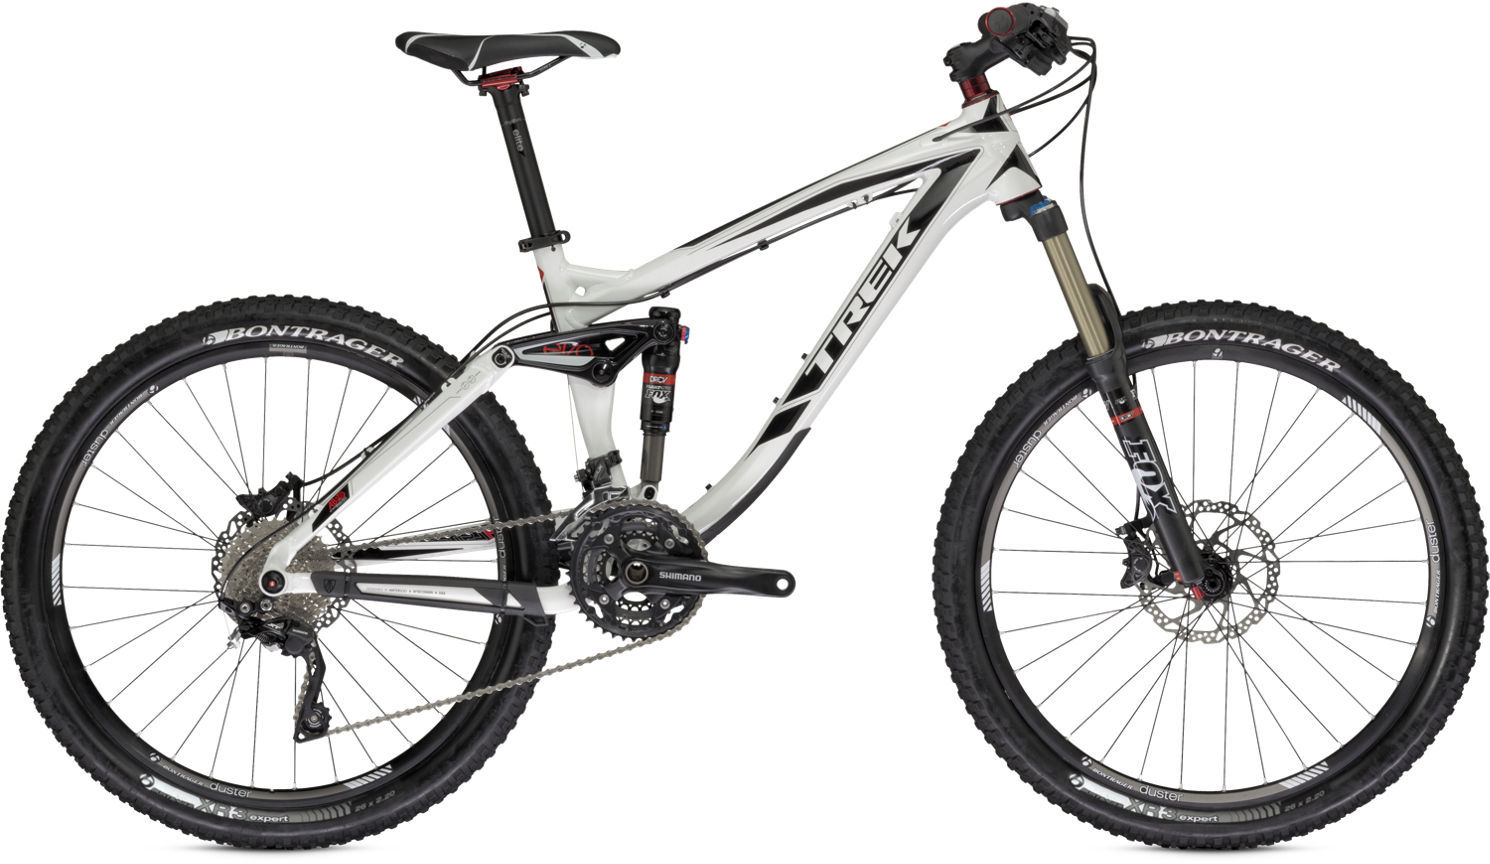 709ca58f0d7 Trek Remedy 8 2013 review - The Bike List